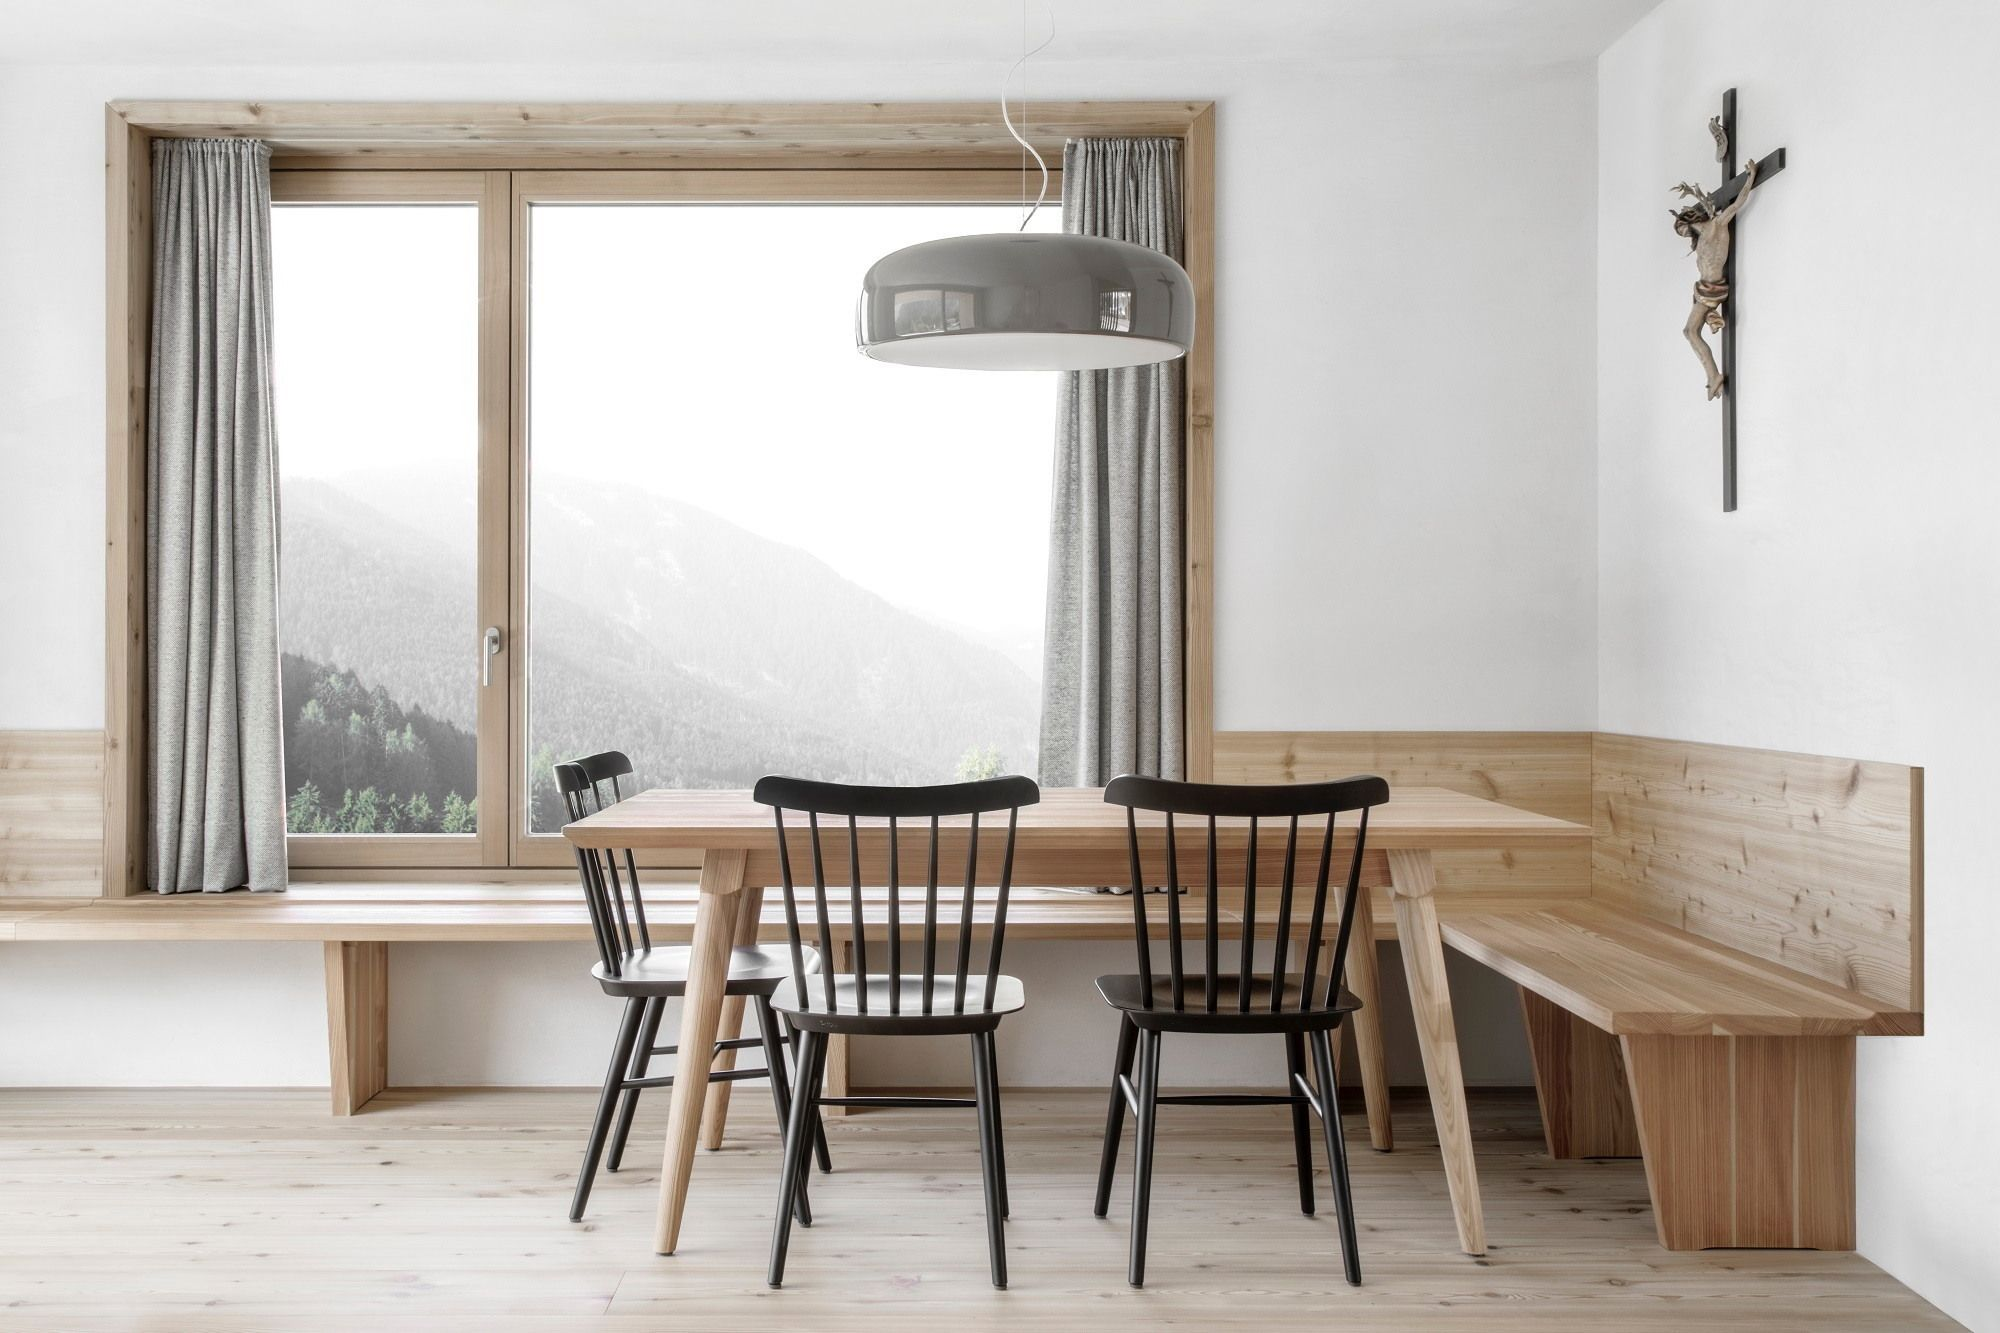 porphyr und dolomit haus in s dtirol von daniel ellecosta farmers love renovation. Black Bedroom Furniture Sets. Home Design Ideas